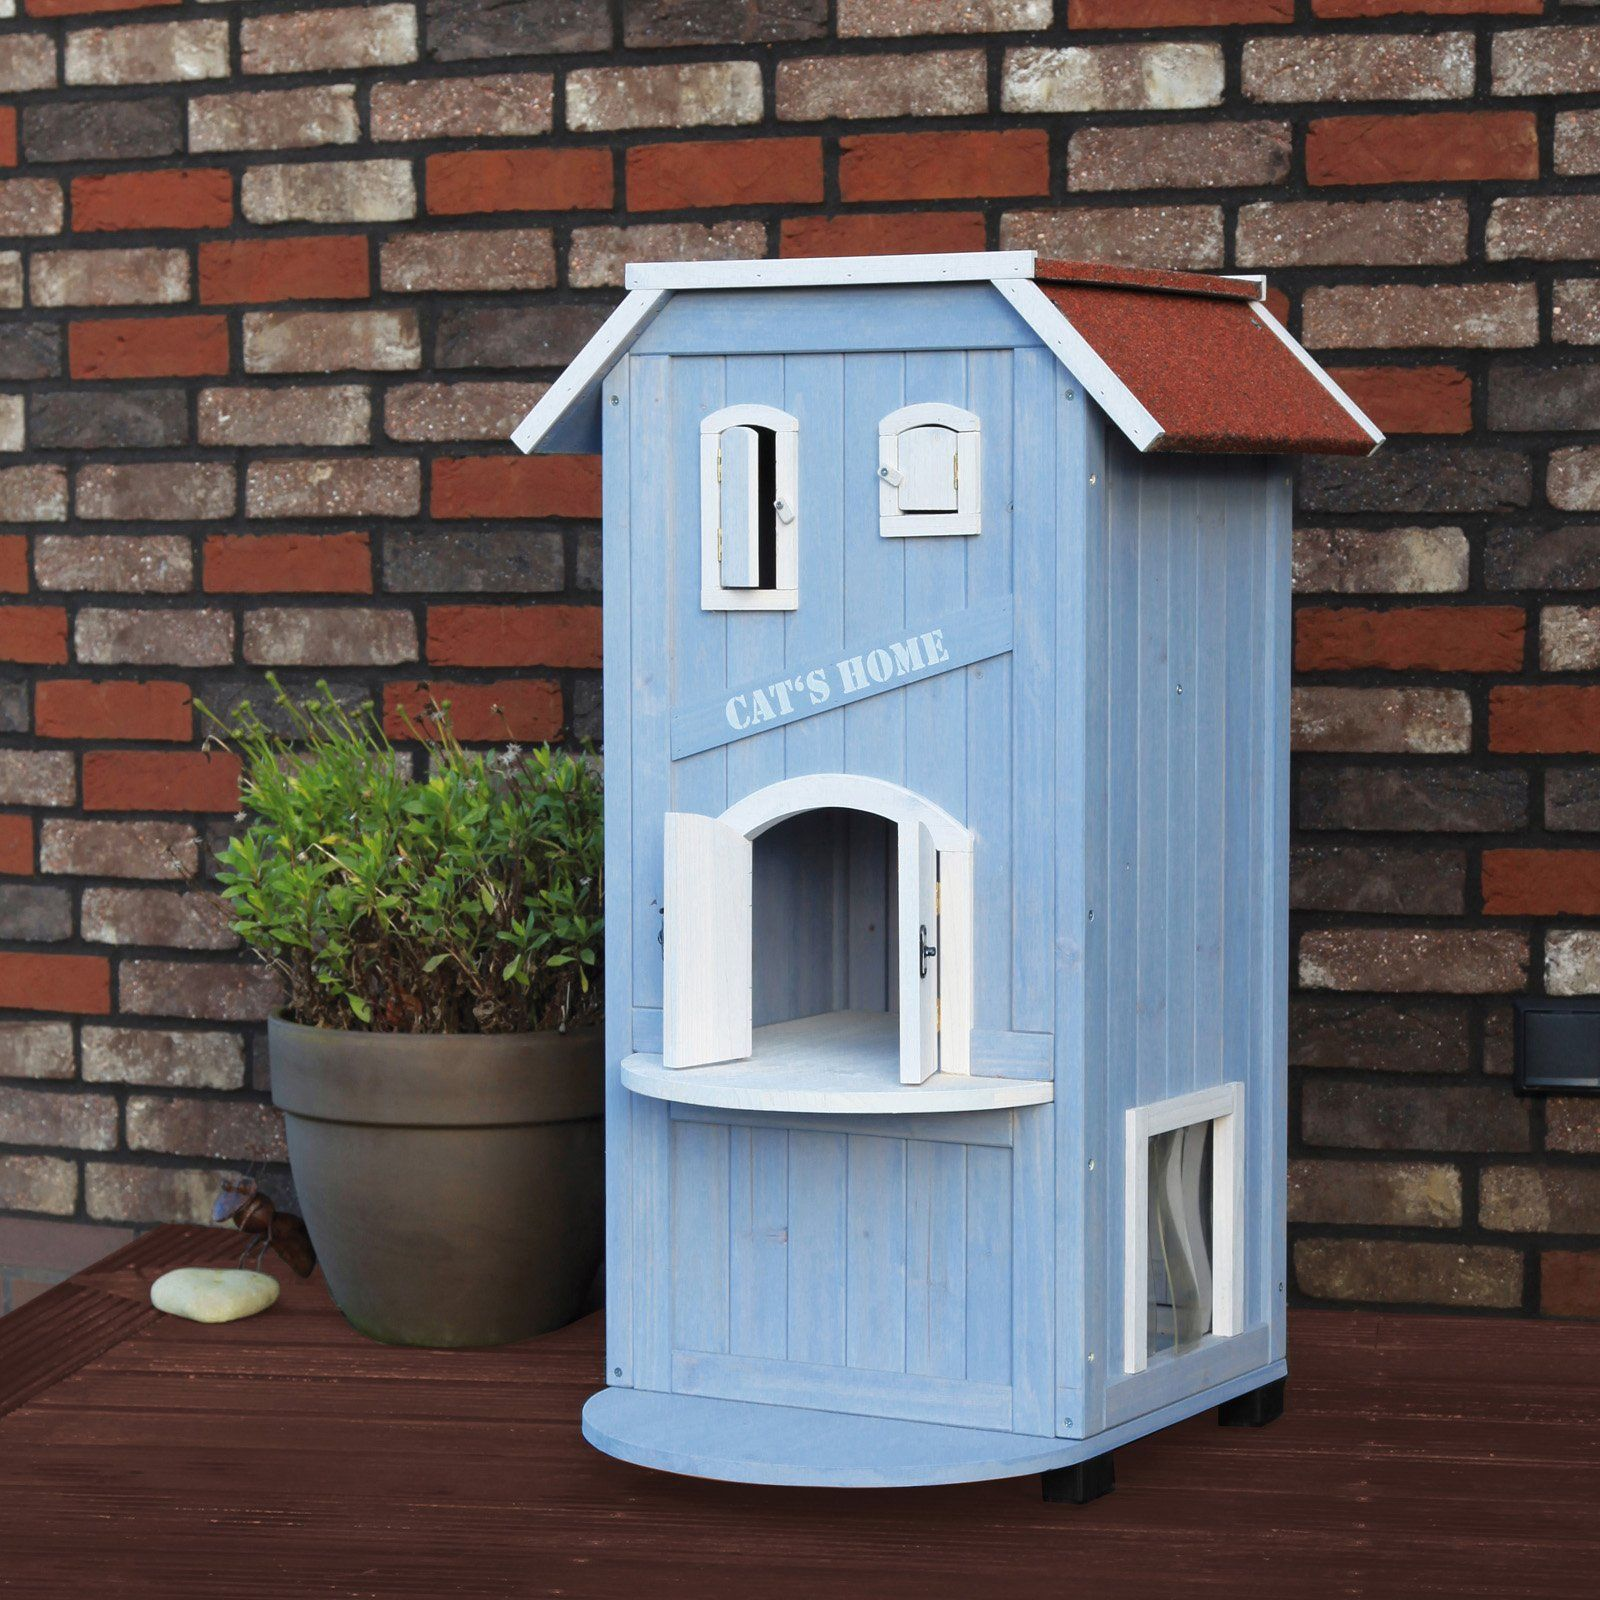 Trixie 3 Story Cat S Home Indoors Or Outdoors Your Feline Will Have A Safe And Secure Three Level Shelter In Which To Relax With The Tr Wooden Cat House Outdoor Cats Wooden